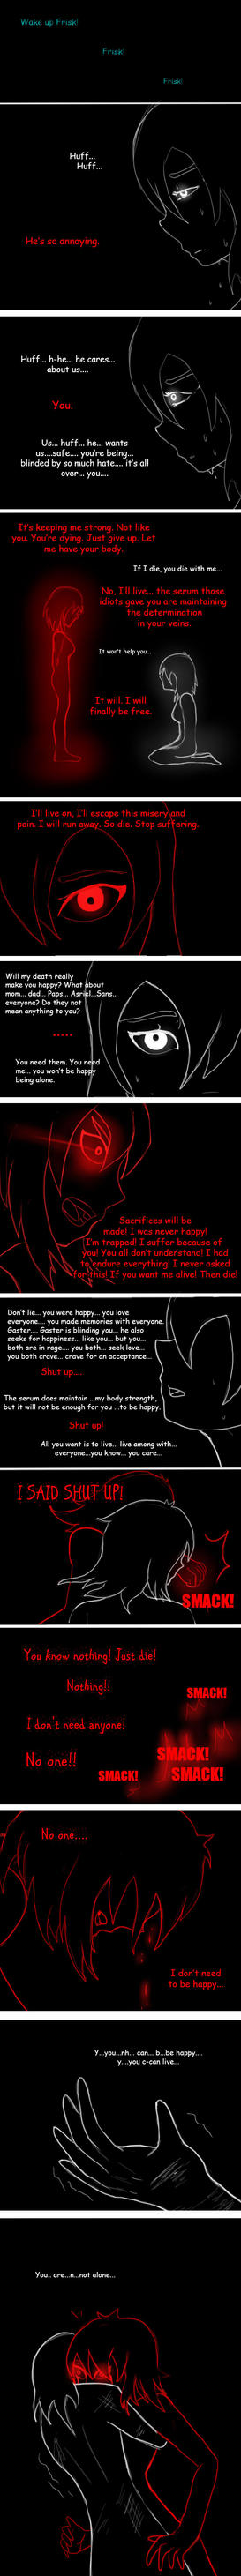 Undertale New world (page 94) by joselyn565